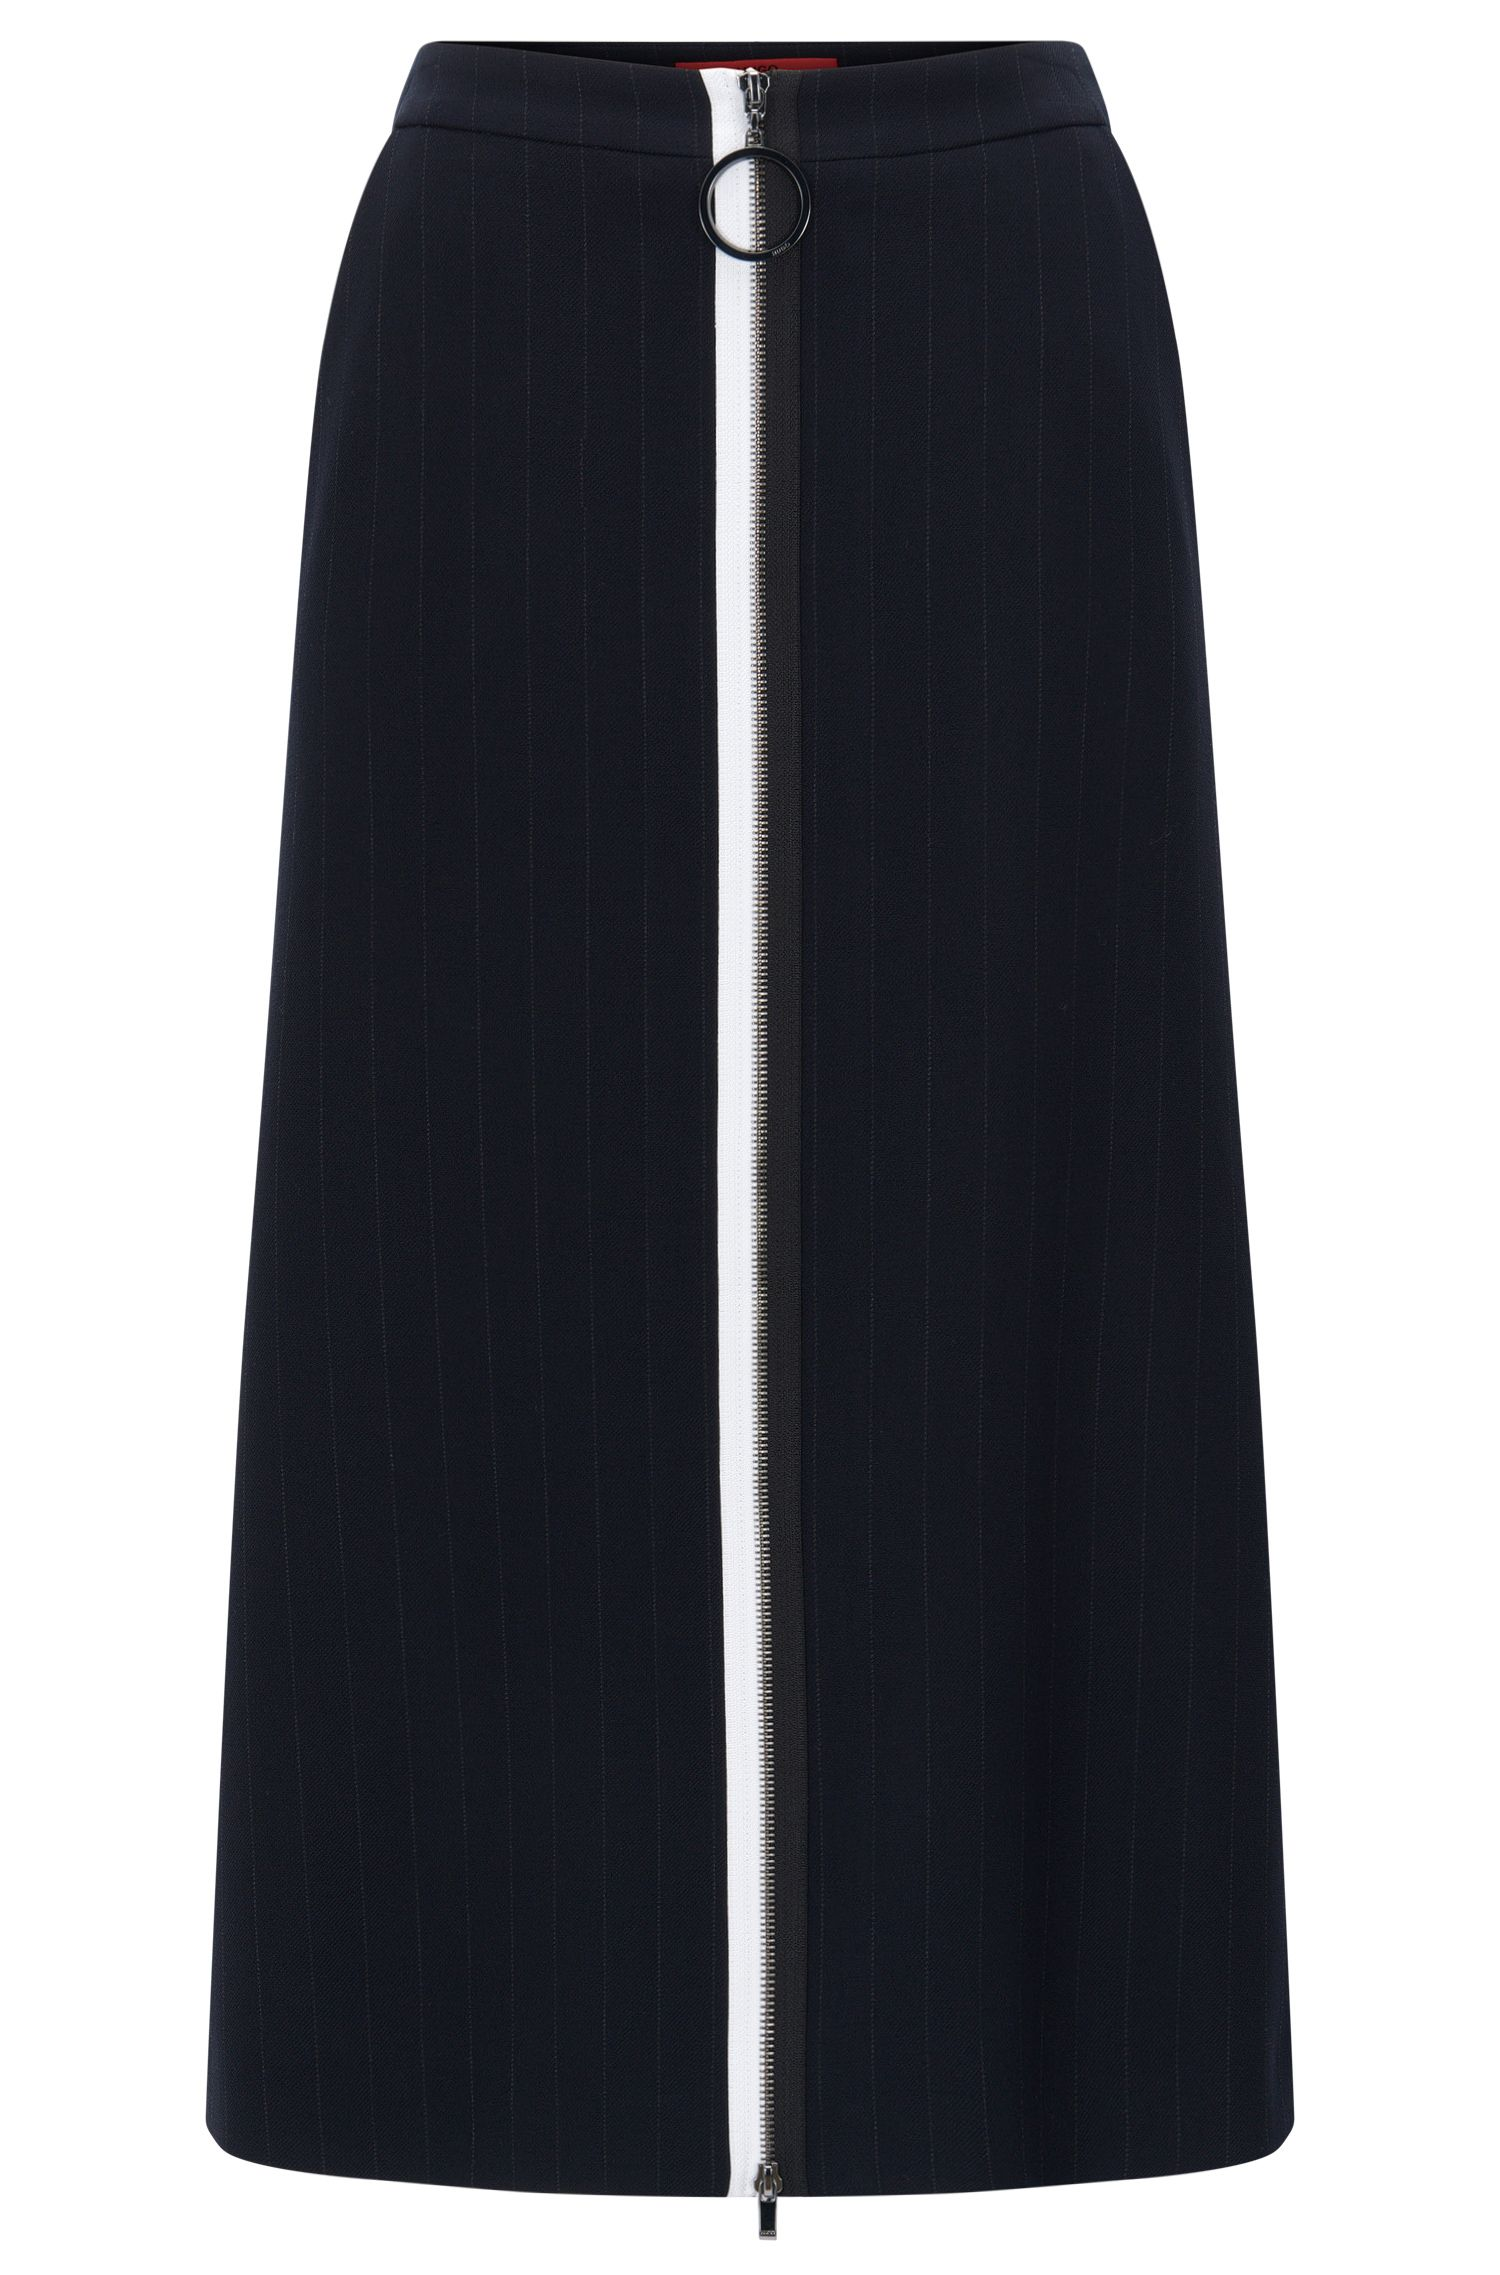 Regular-fit skirt in double-face fabric